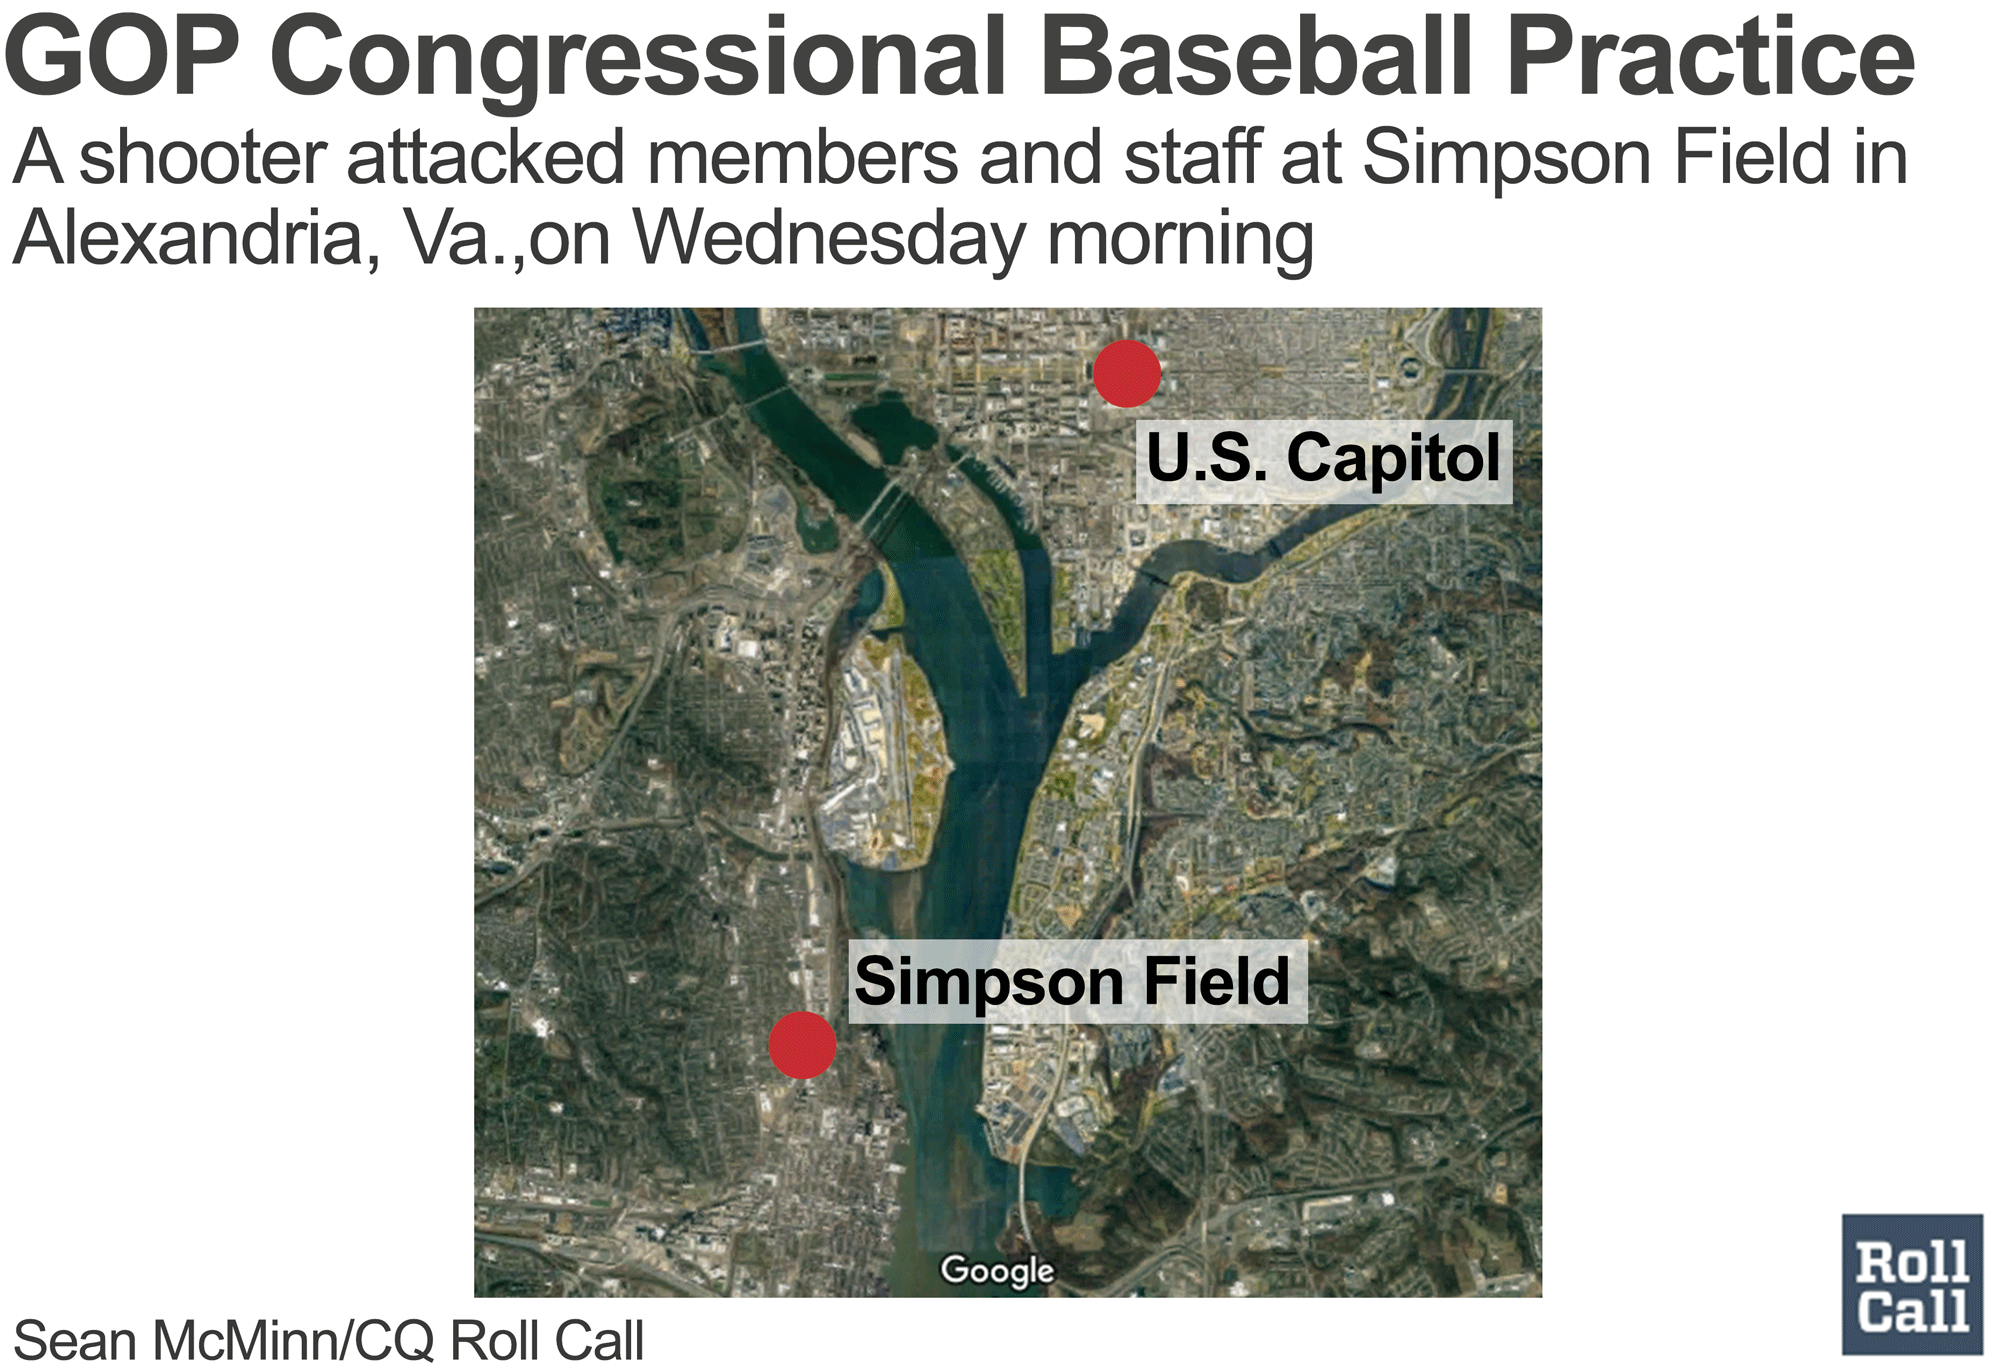 Other view: Scalise shooting: Playing congressional baseball game shows needed unity